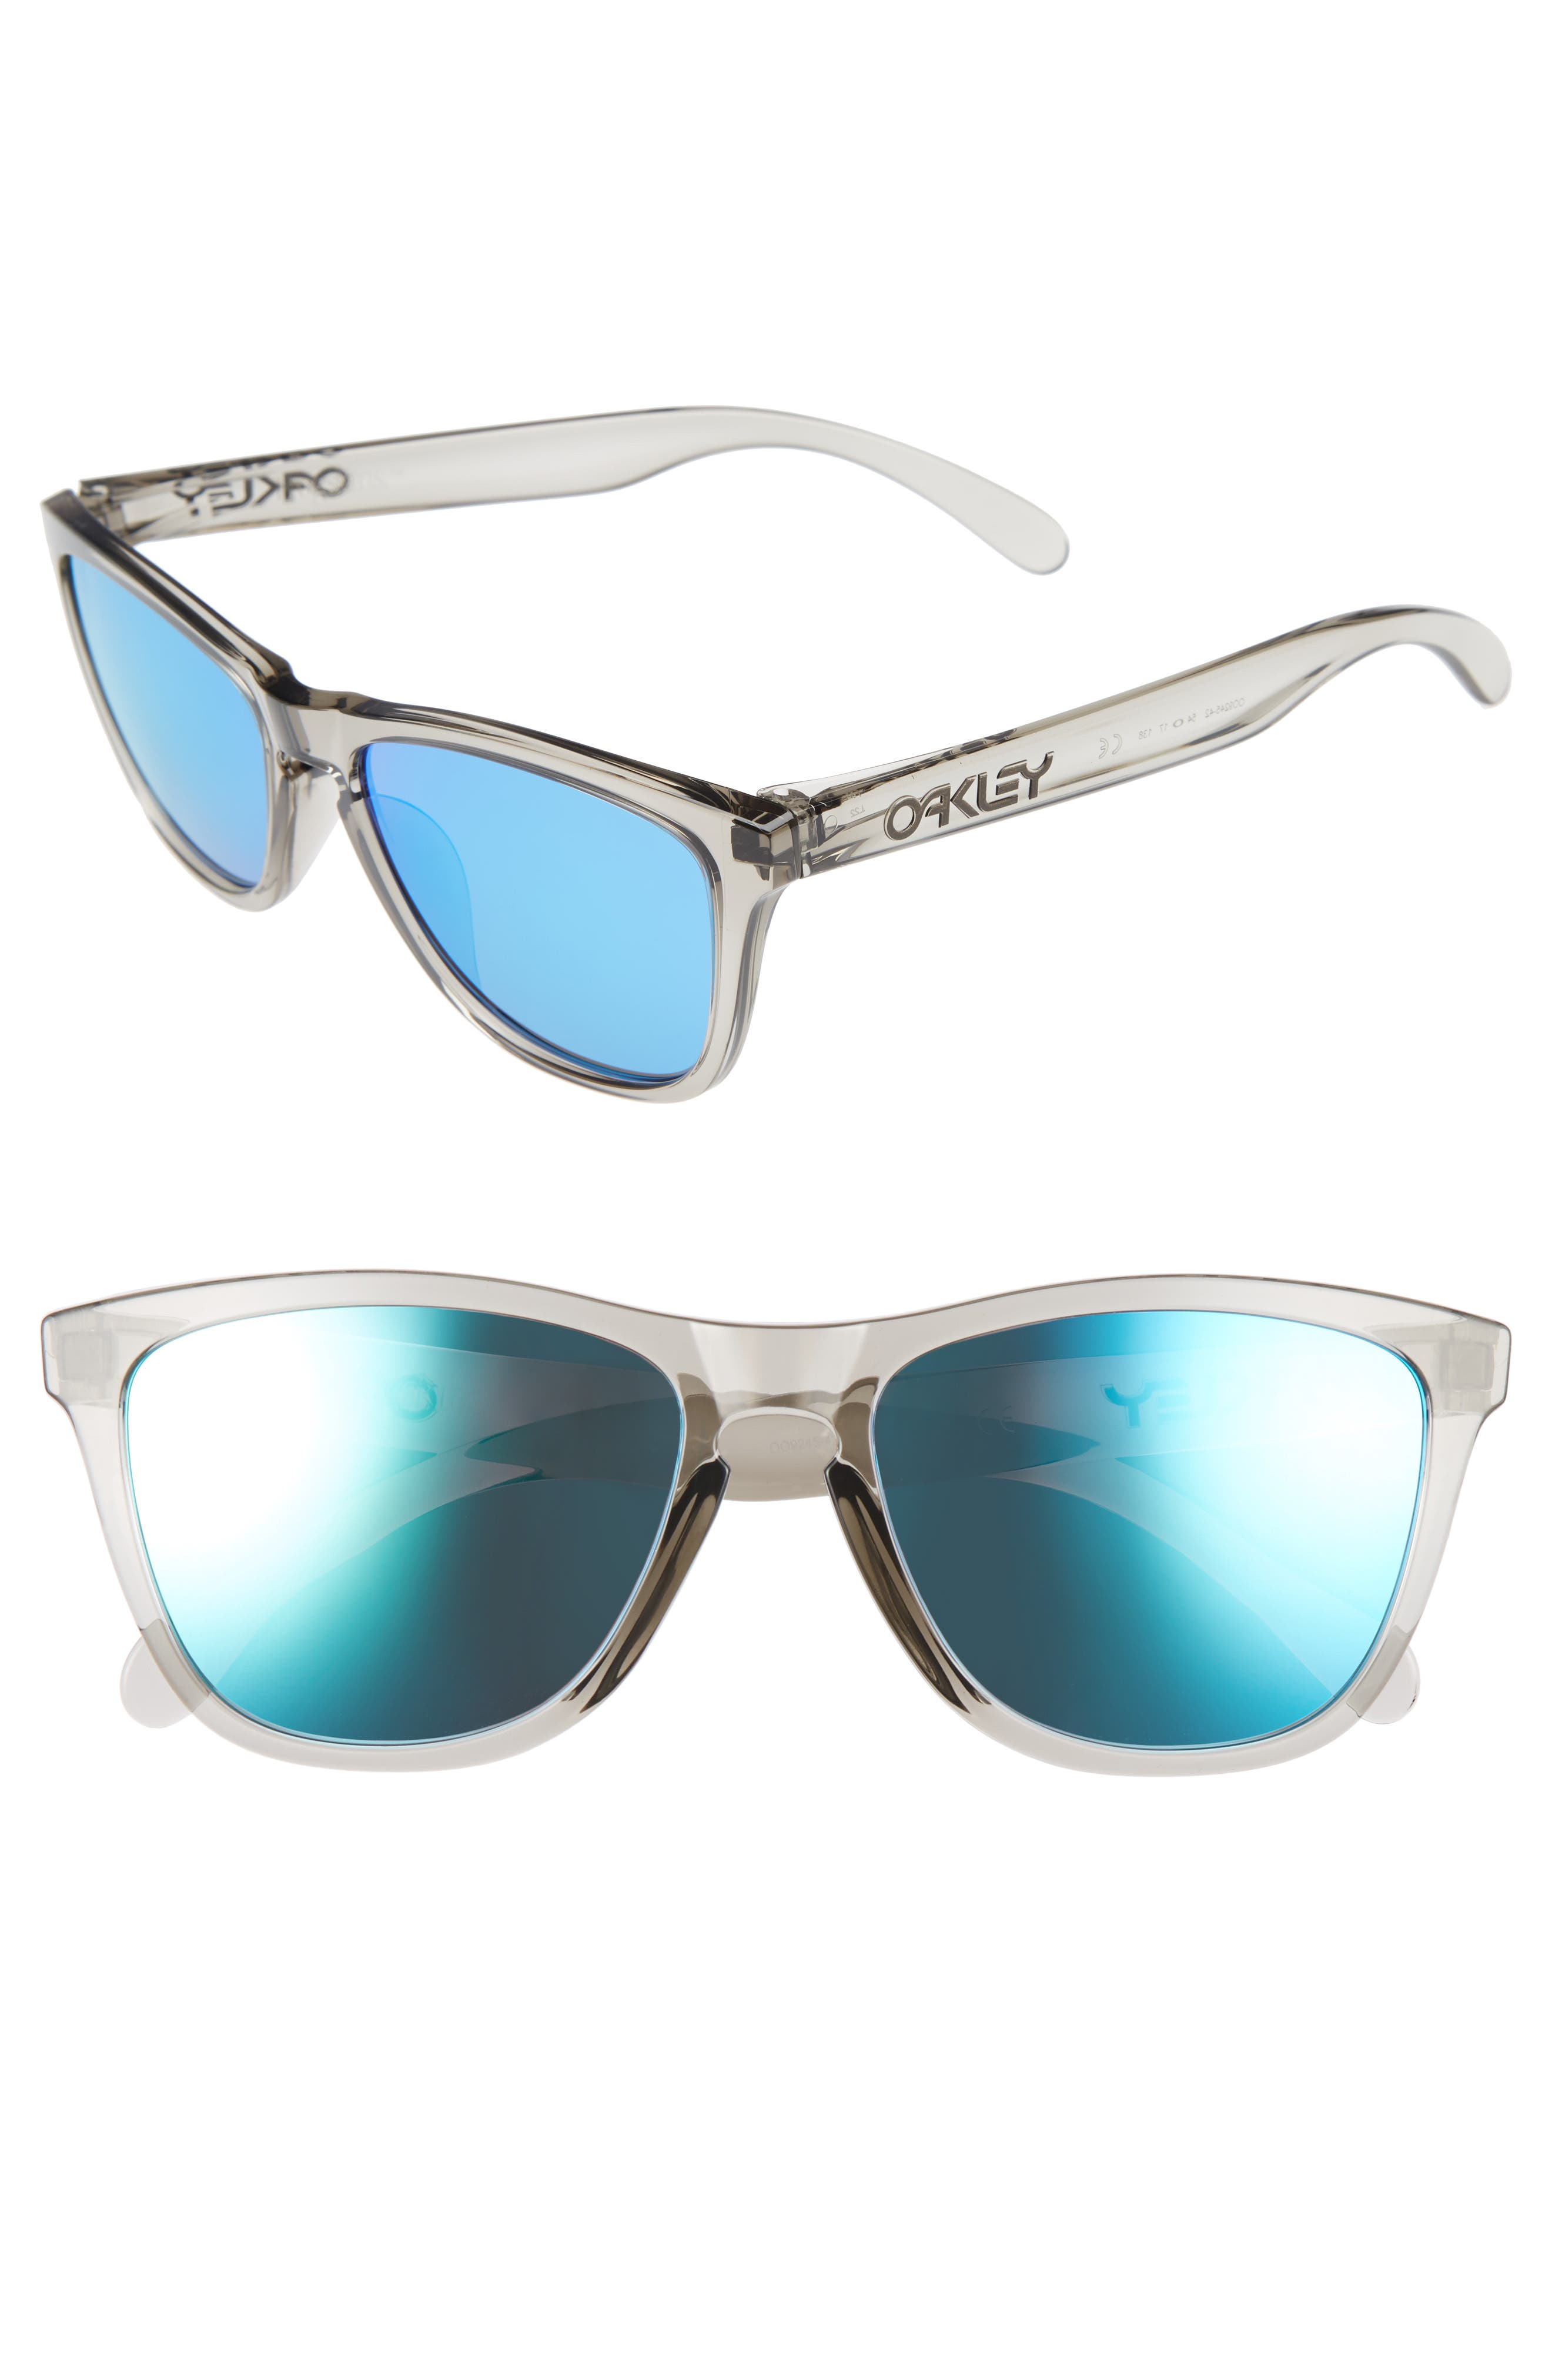 Frogskins<sup>®</sup> 54mm Sunglasses,                             Main thumbnail 1, color,